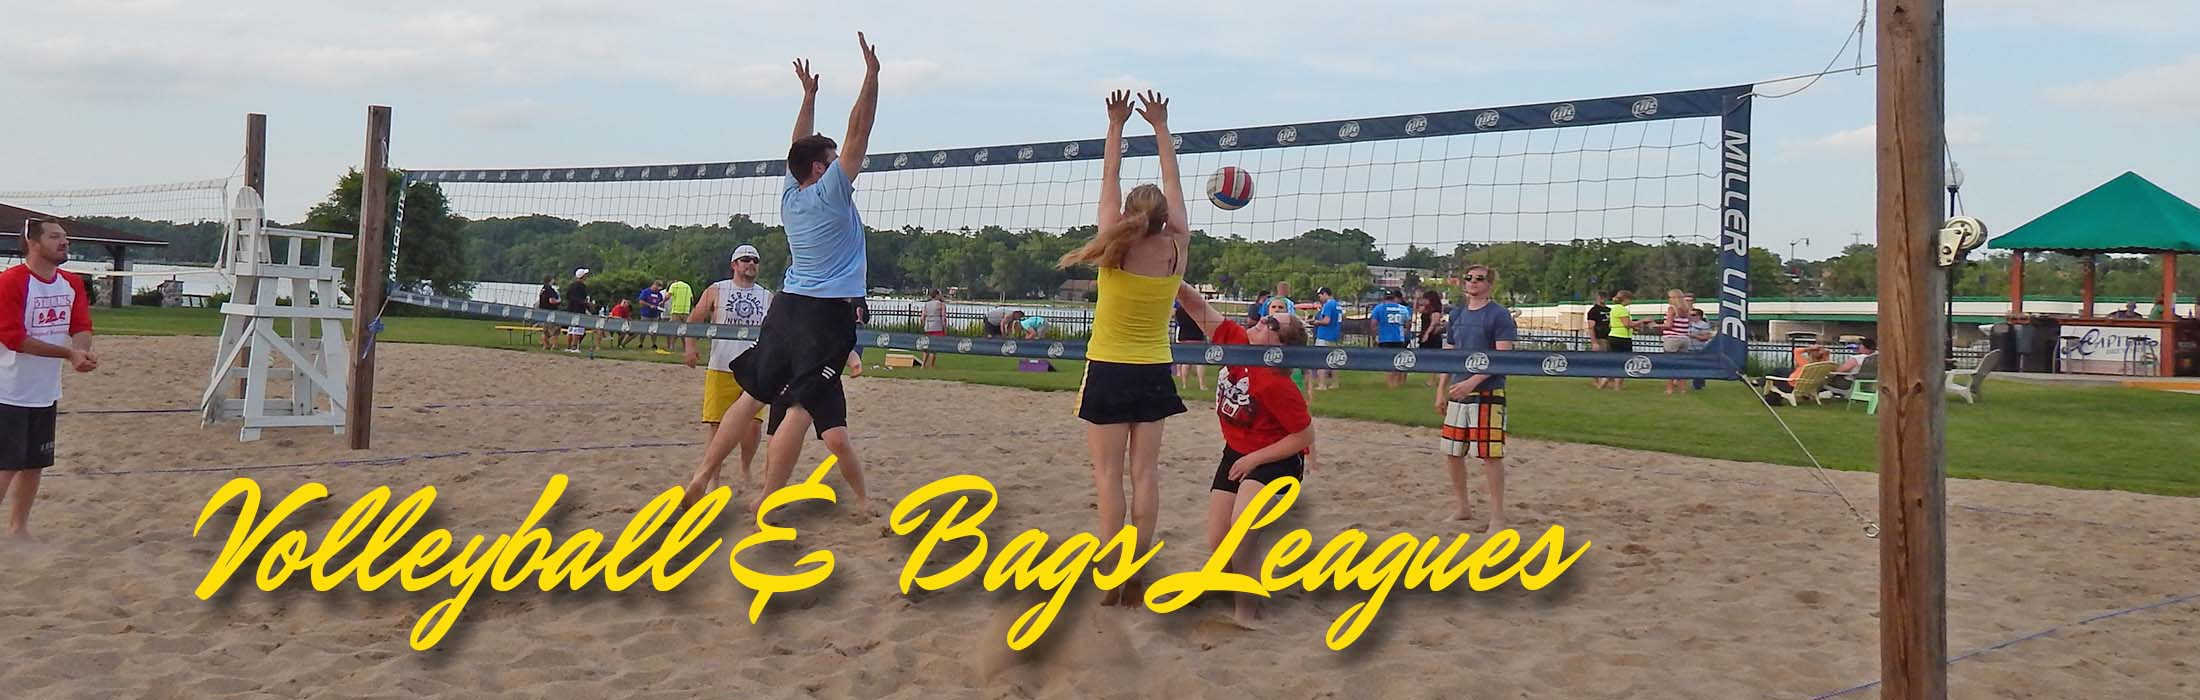 VOlleyball-Bags-The-Rock-Bar-and-Grill-Beloit